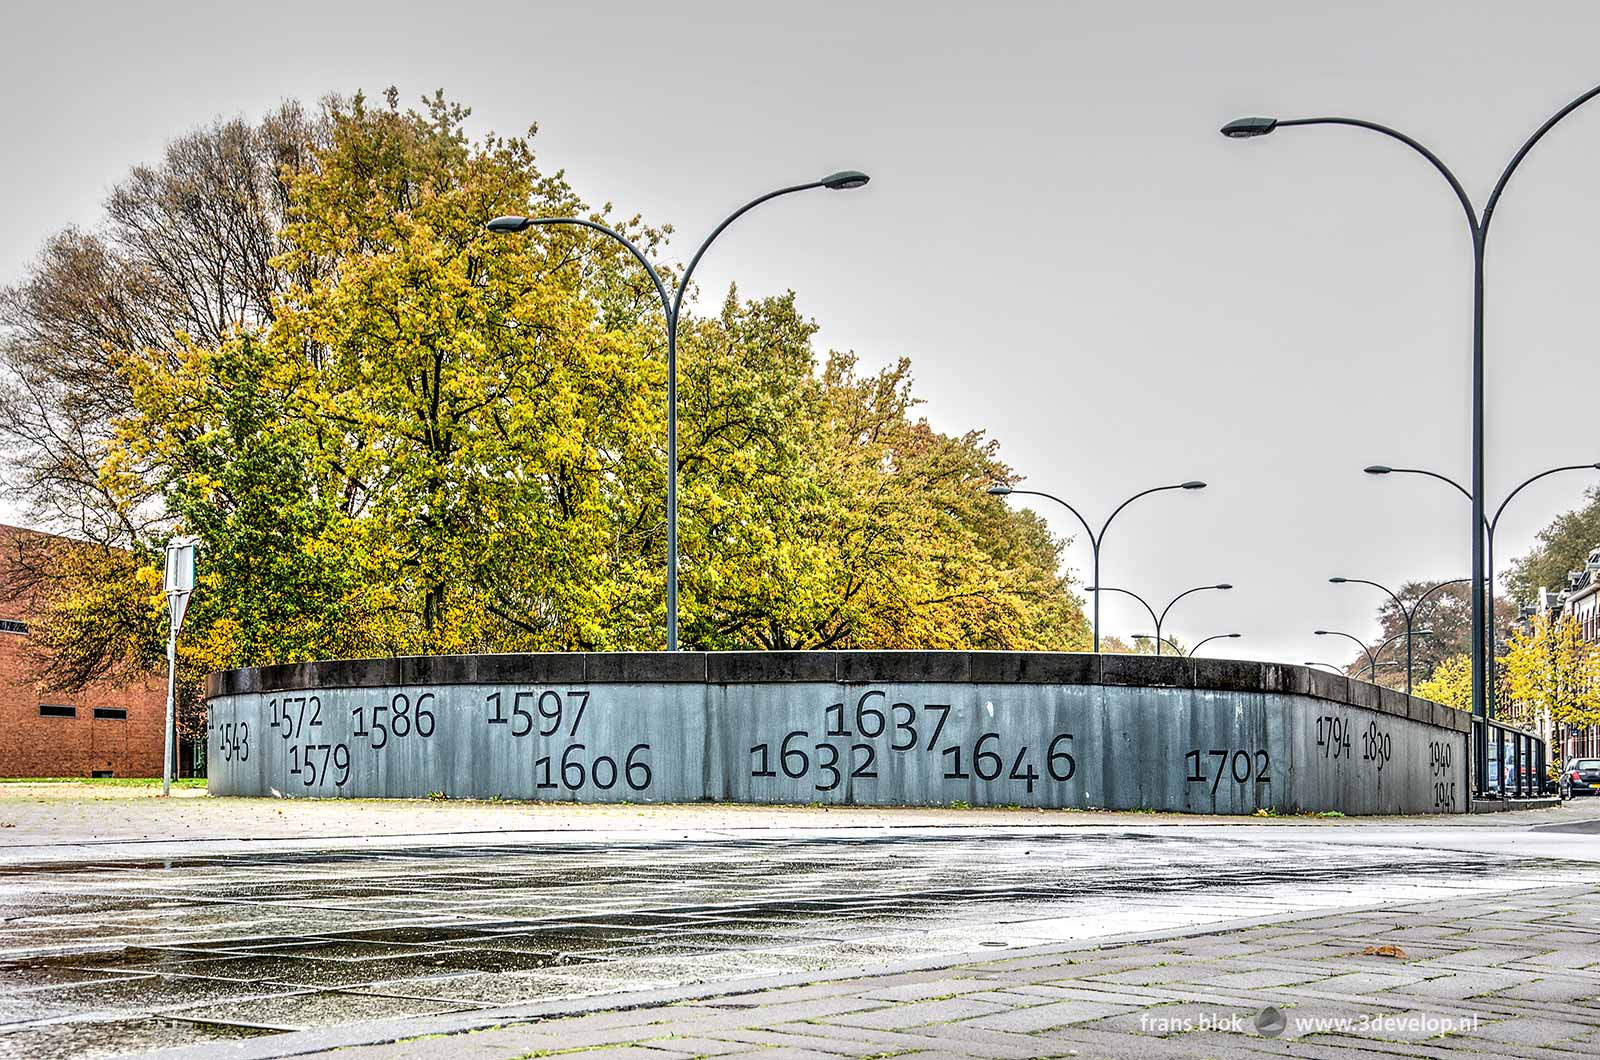 Concrete parapet on Koninginneplein in Venlo, The Netherlands with the years of battles from the city's history